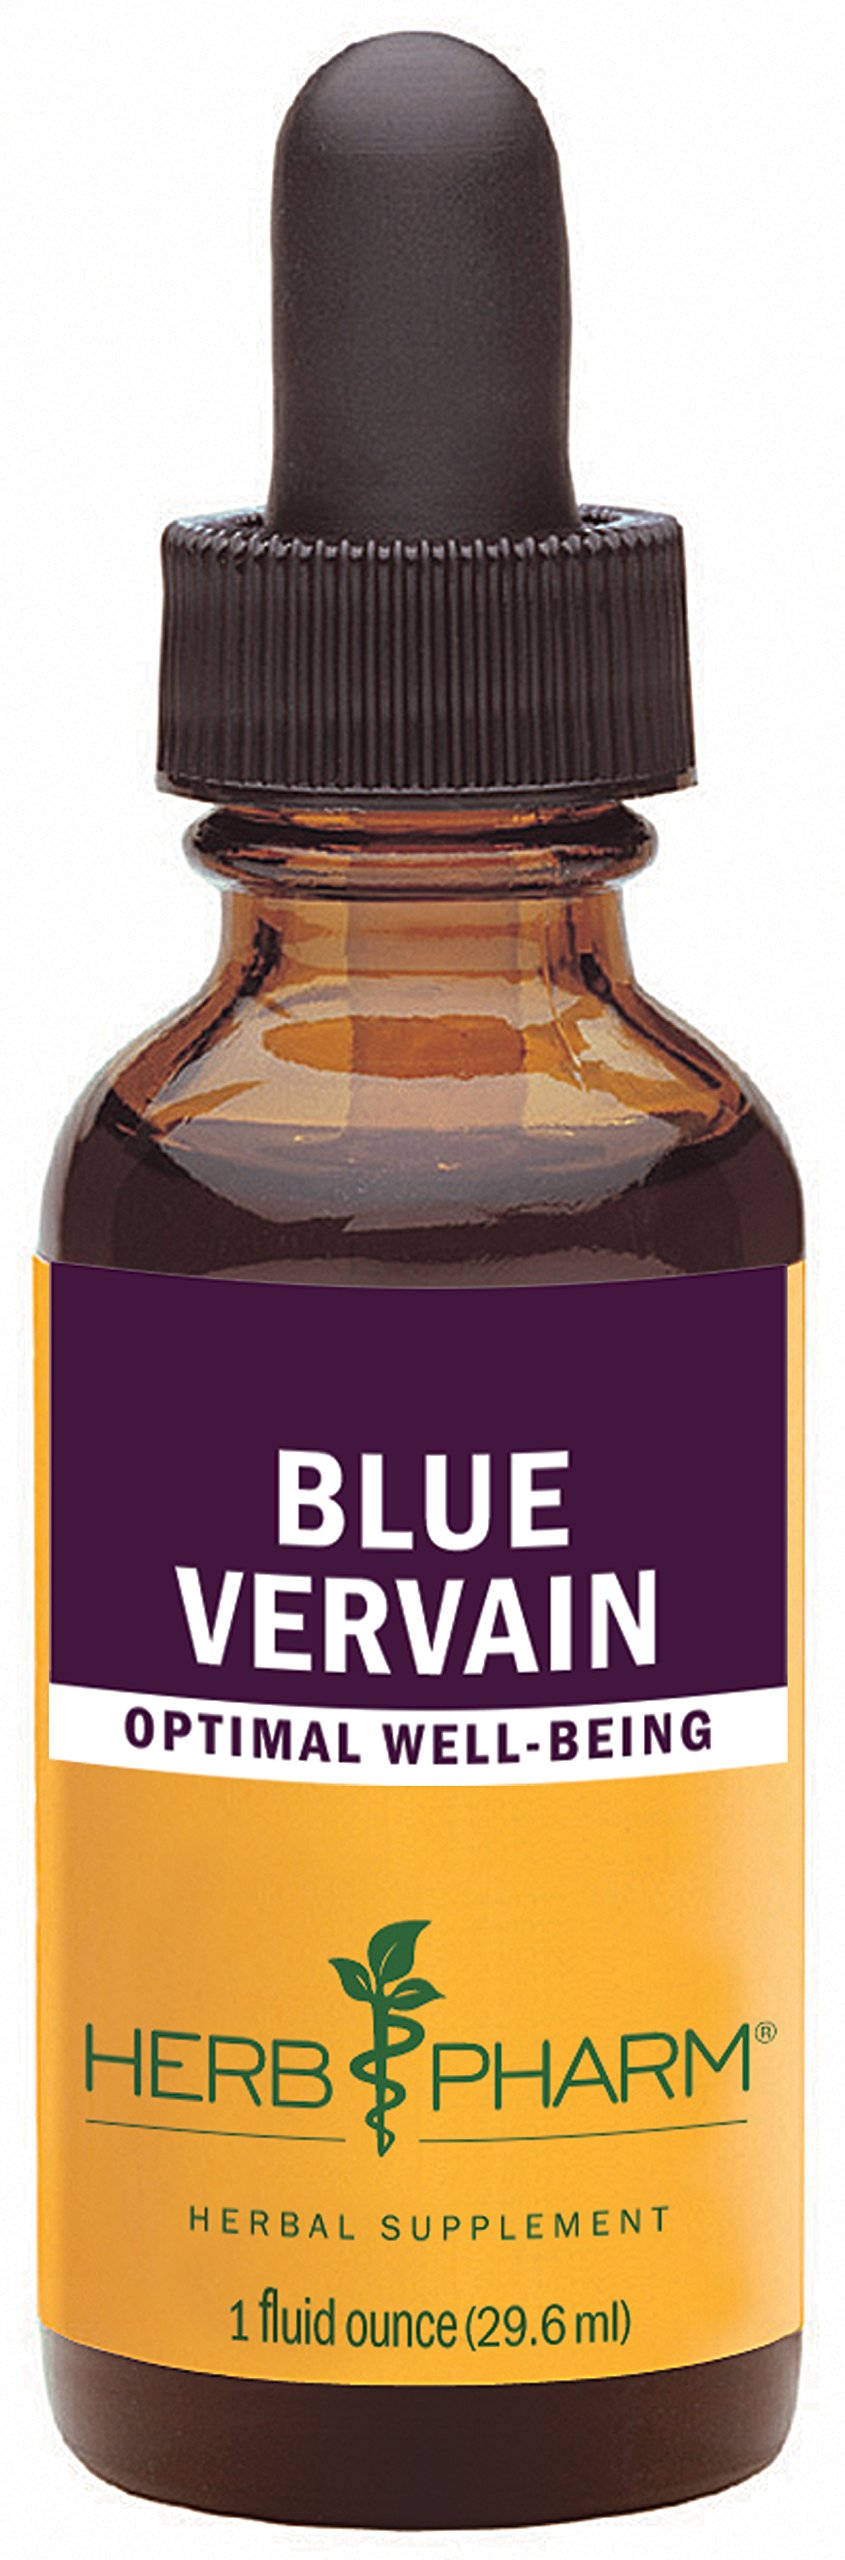 Herb Pharm Certified Organic Blue Vervain Extract - 1 Ounce